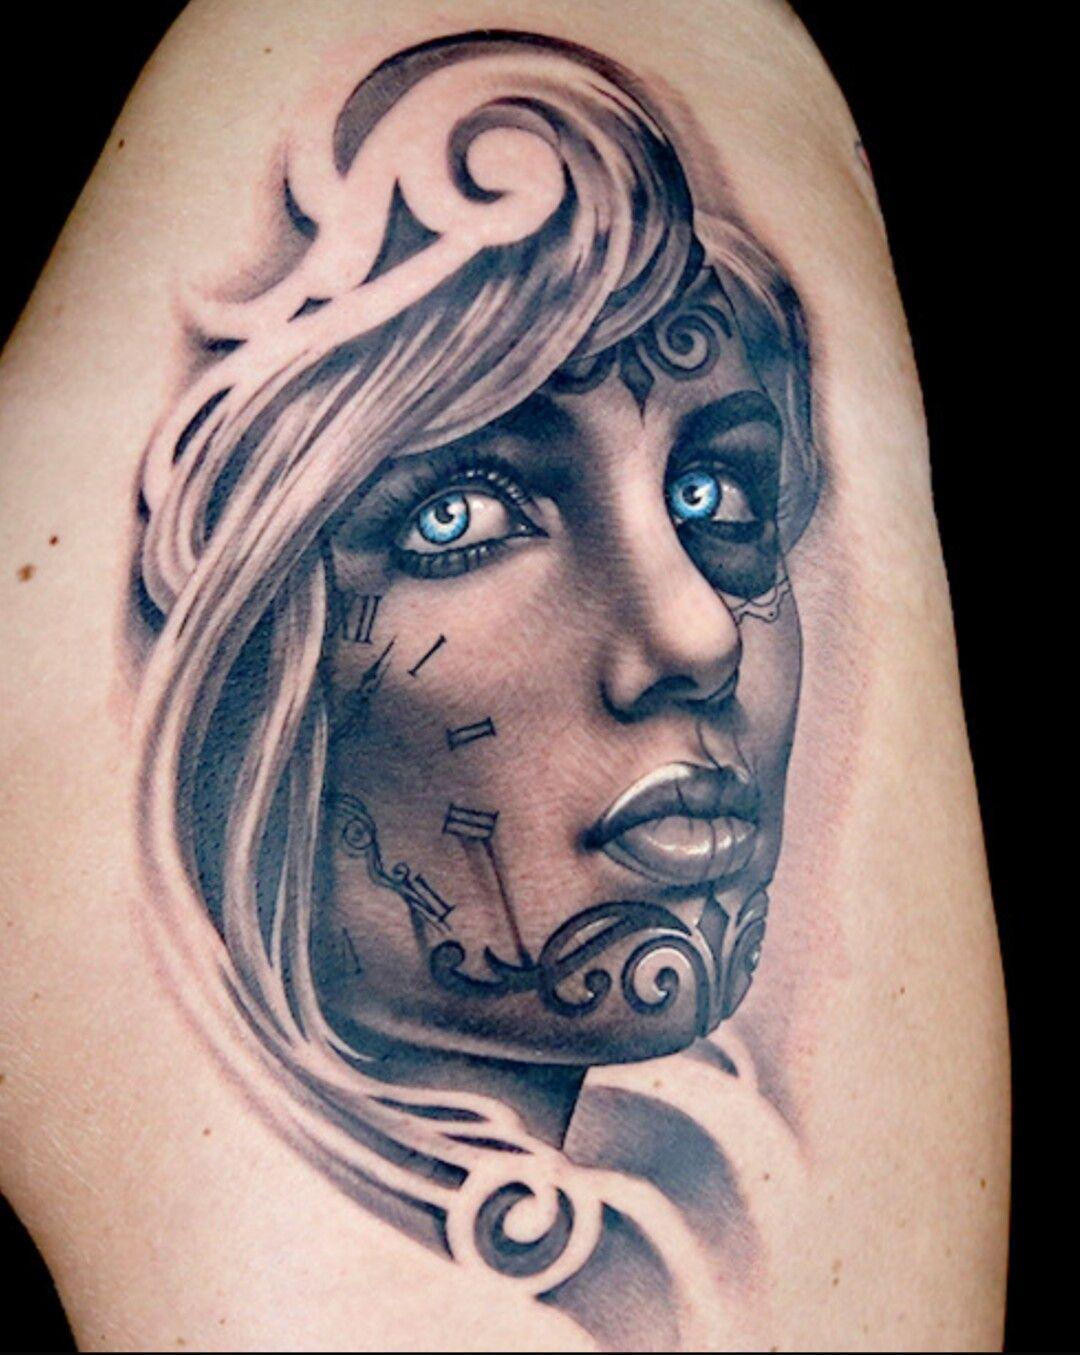 Don't normally like tattoos of people but this fantastical